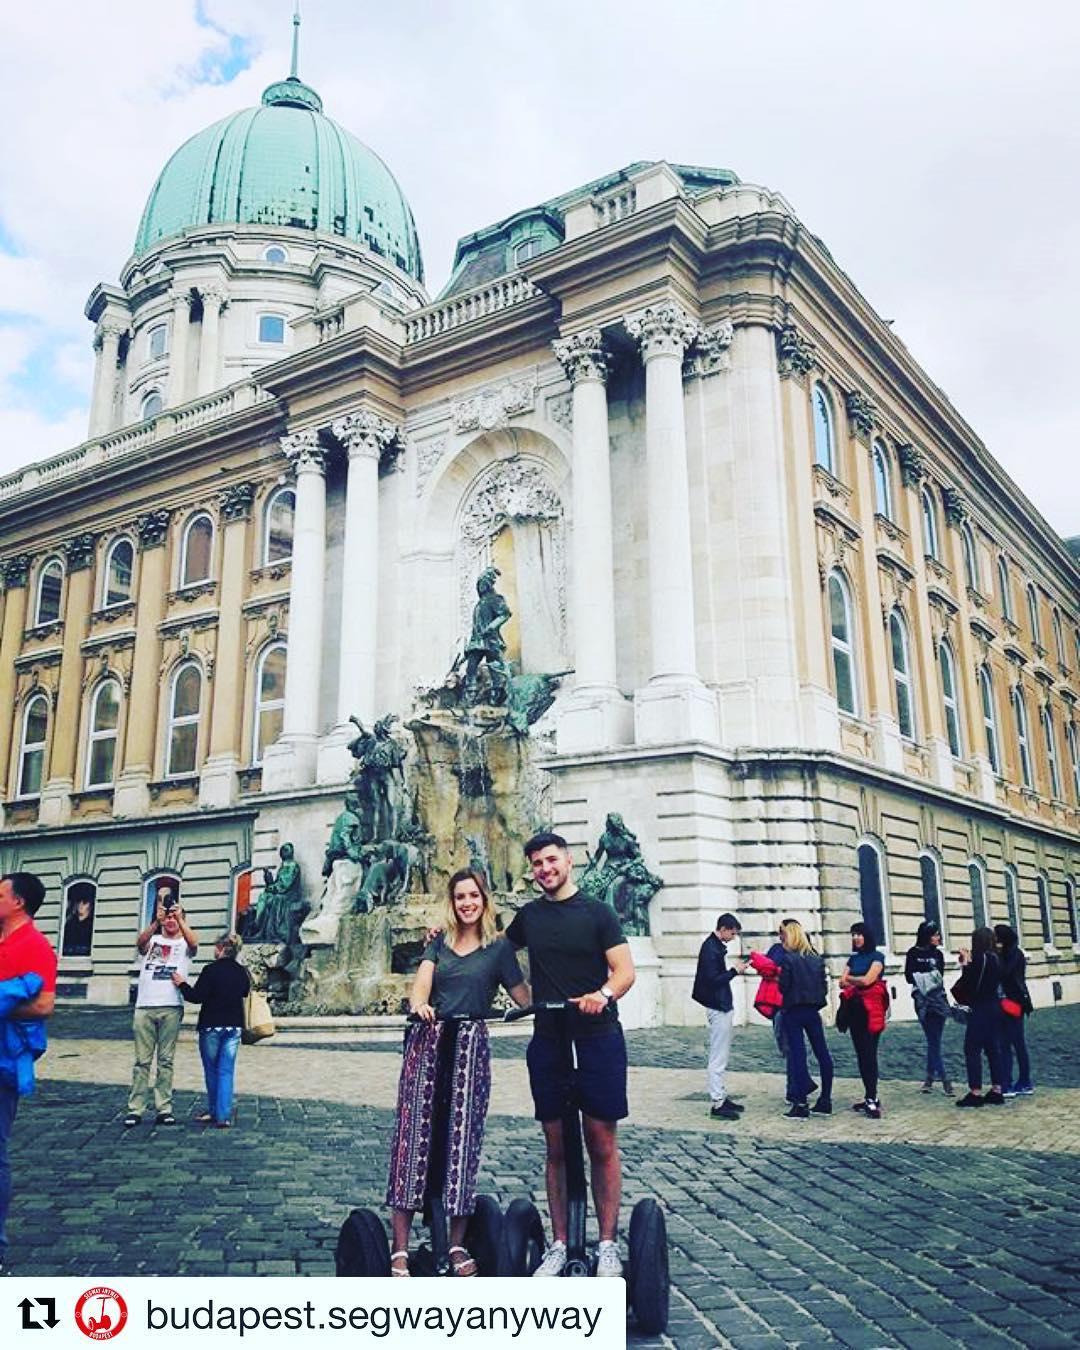 Check out the sights of Budapest including Buda Castle on an amazing guided Segway tour. @budapest.segwayanyway ・・・ Our happy tourists exploring Buda Castle   Come and join us as well